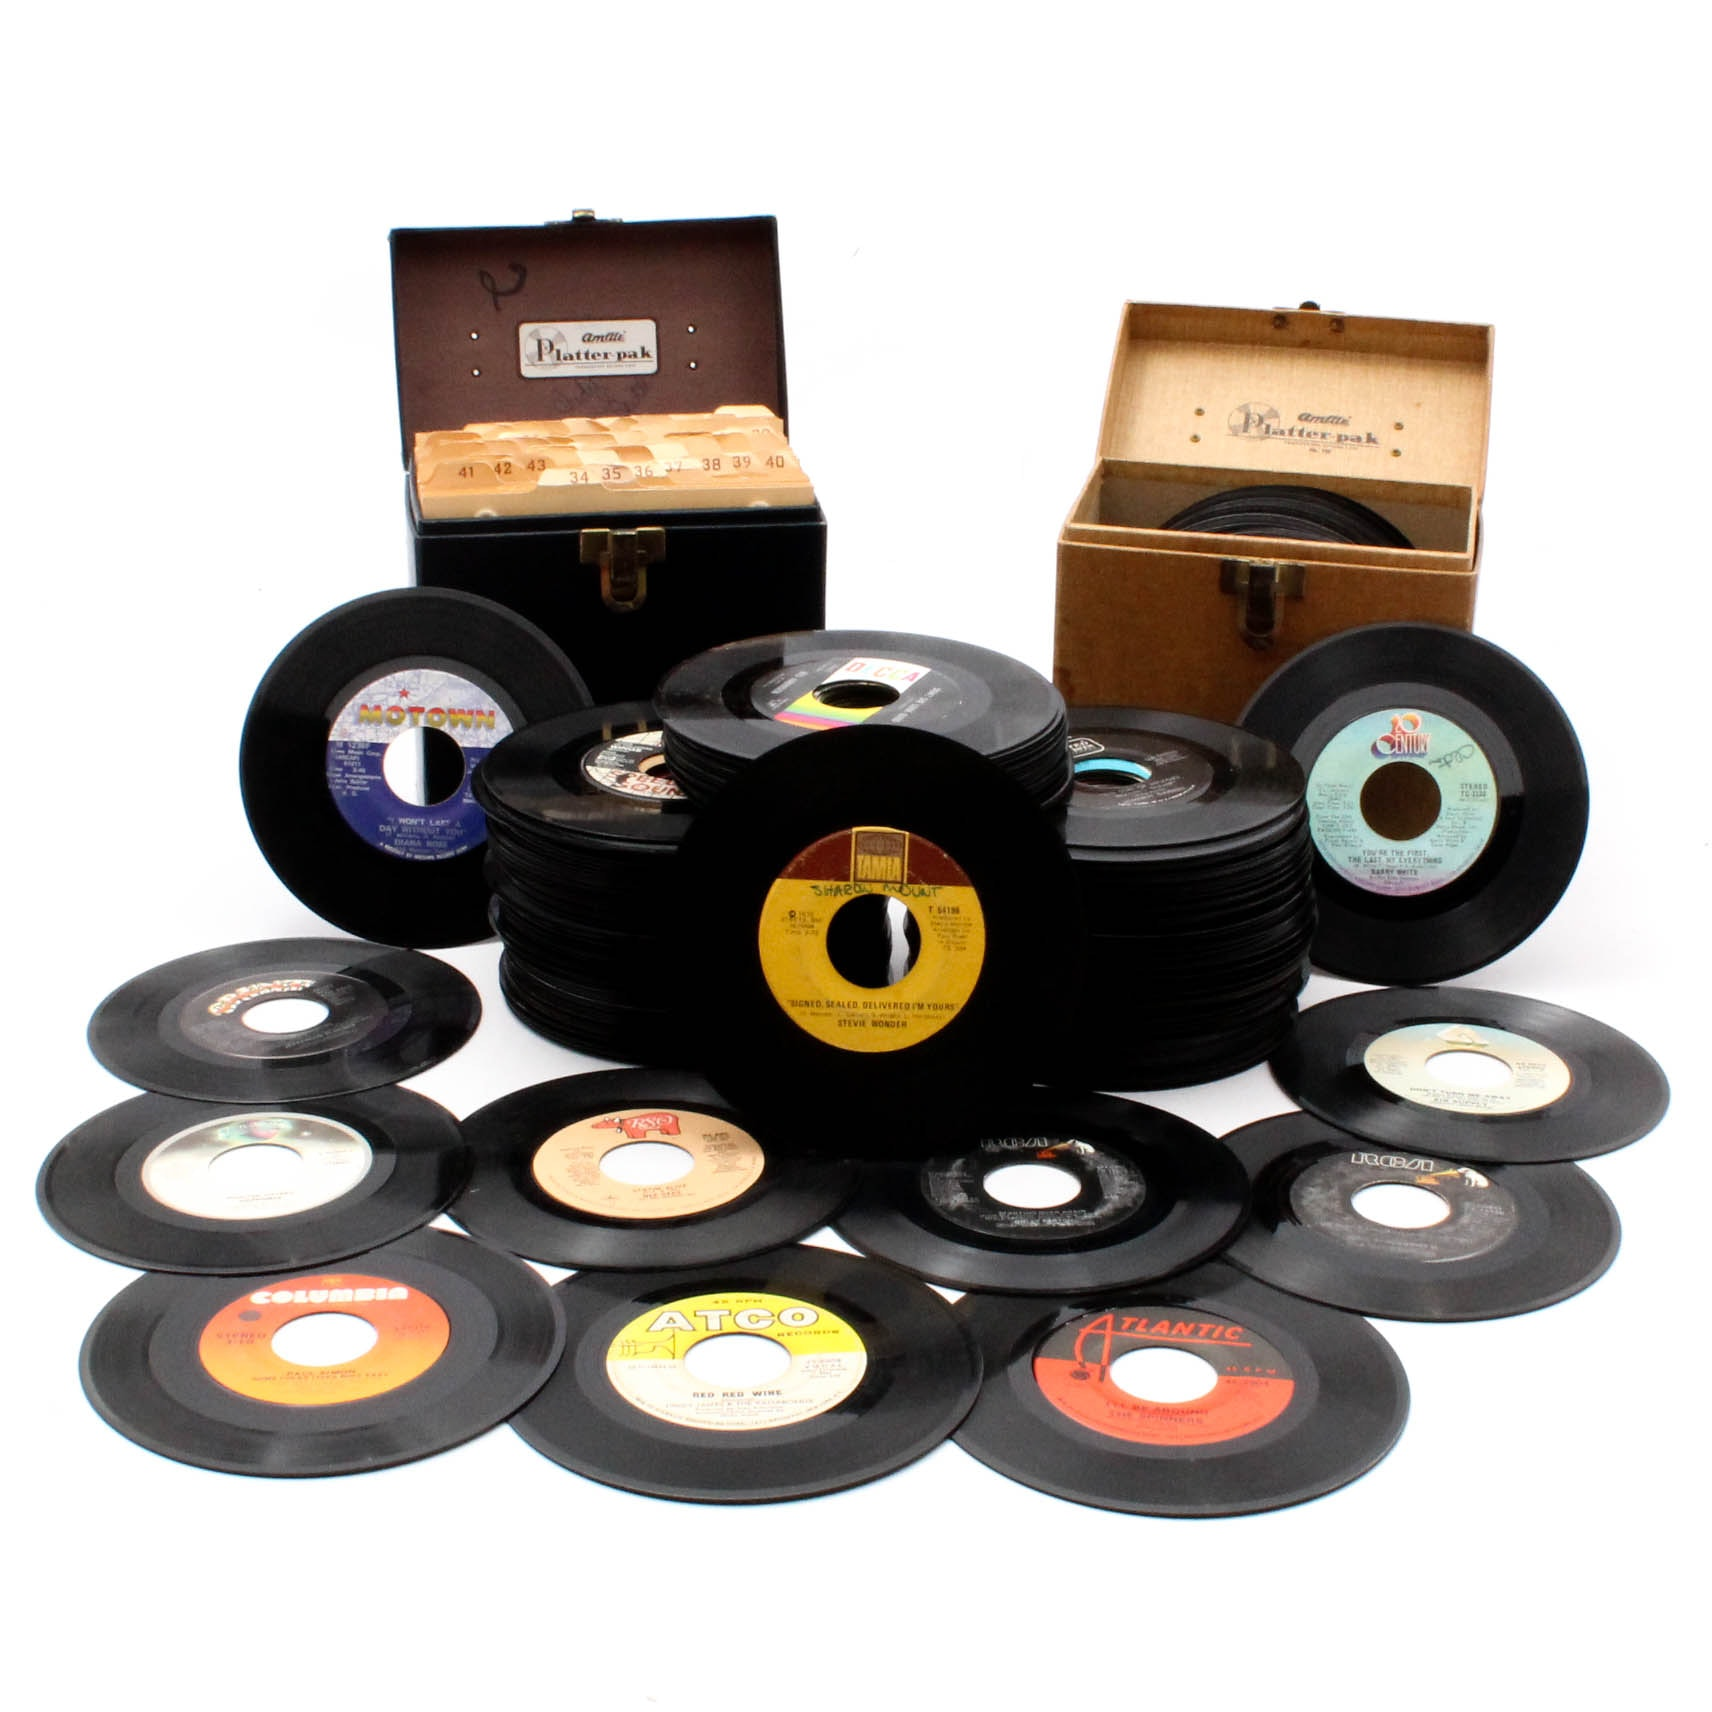 Vinyl Records Featuring Diana Ross, Stevie Wonder, Paul Simon and More